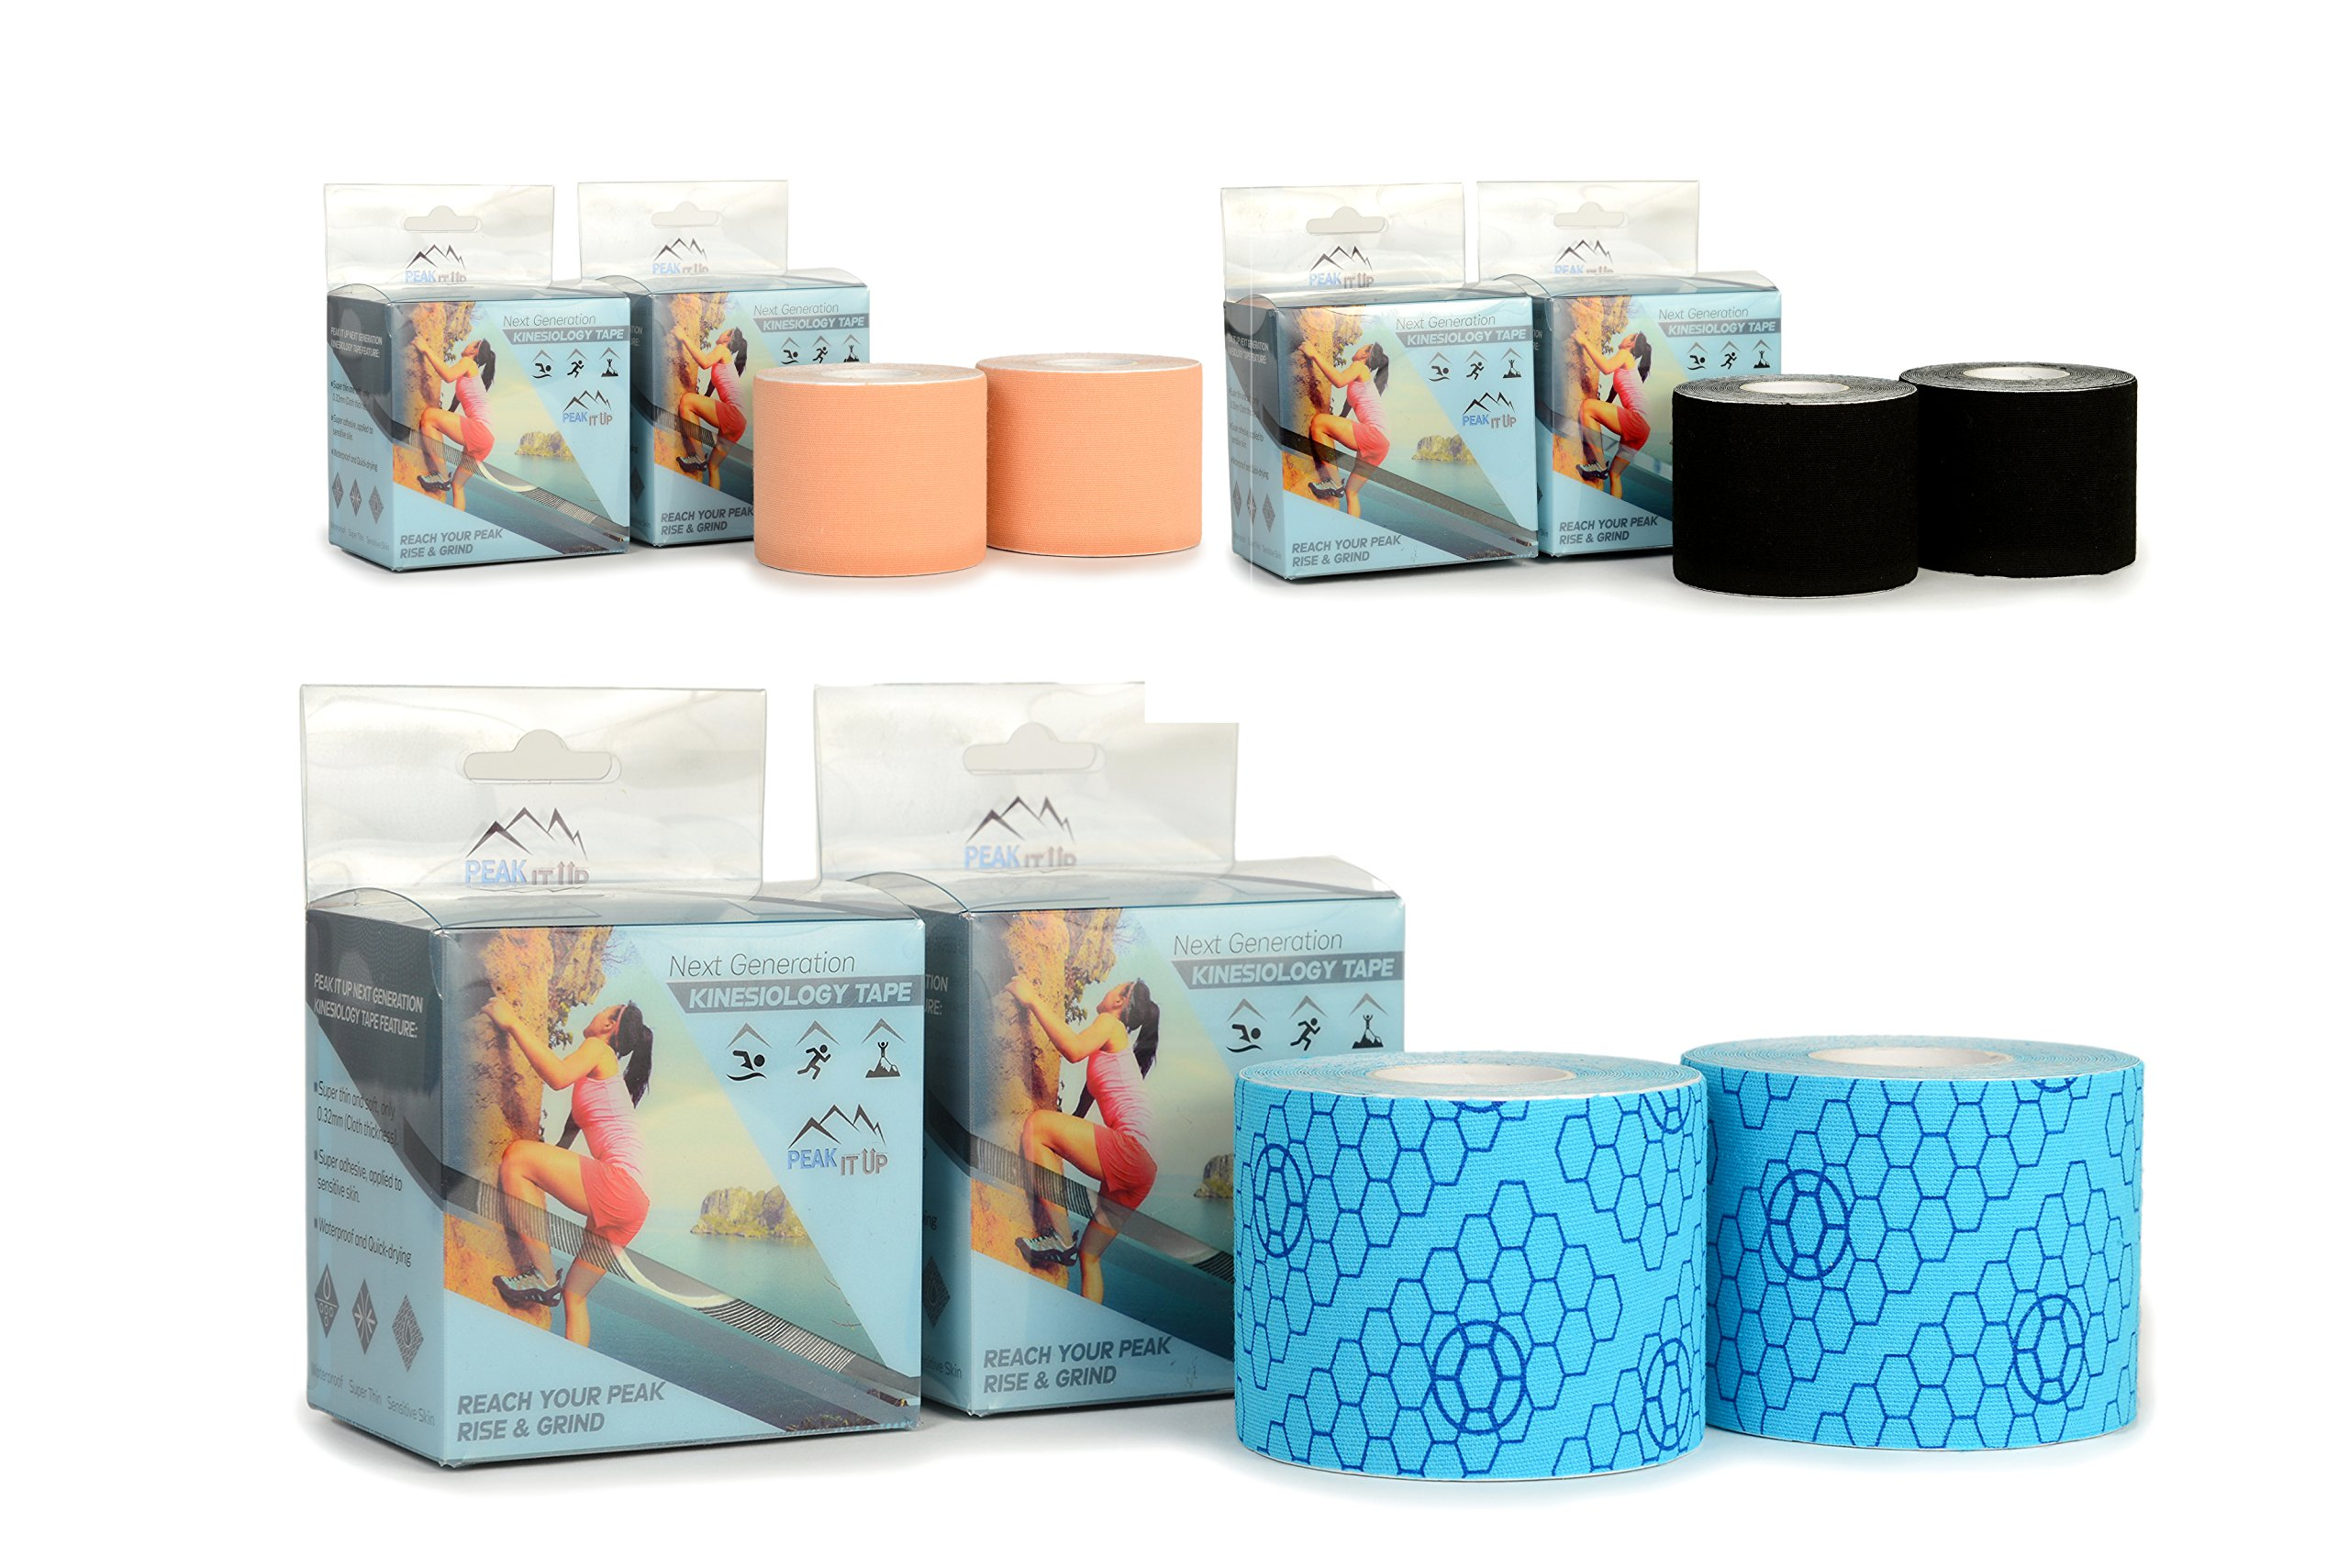 Next Generation Kinesiology Tape, 2' x 16.4', 2 Pack- Perfect Support to Reduce Pain & Improve Recovery - Super Adhesive & Elastic Stretch